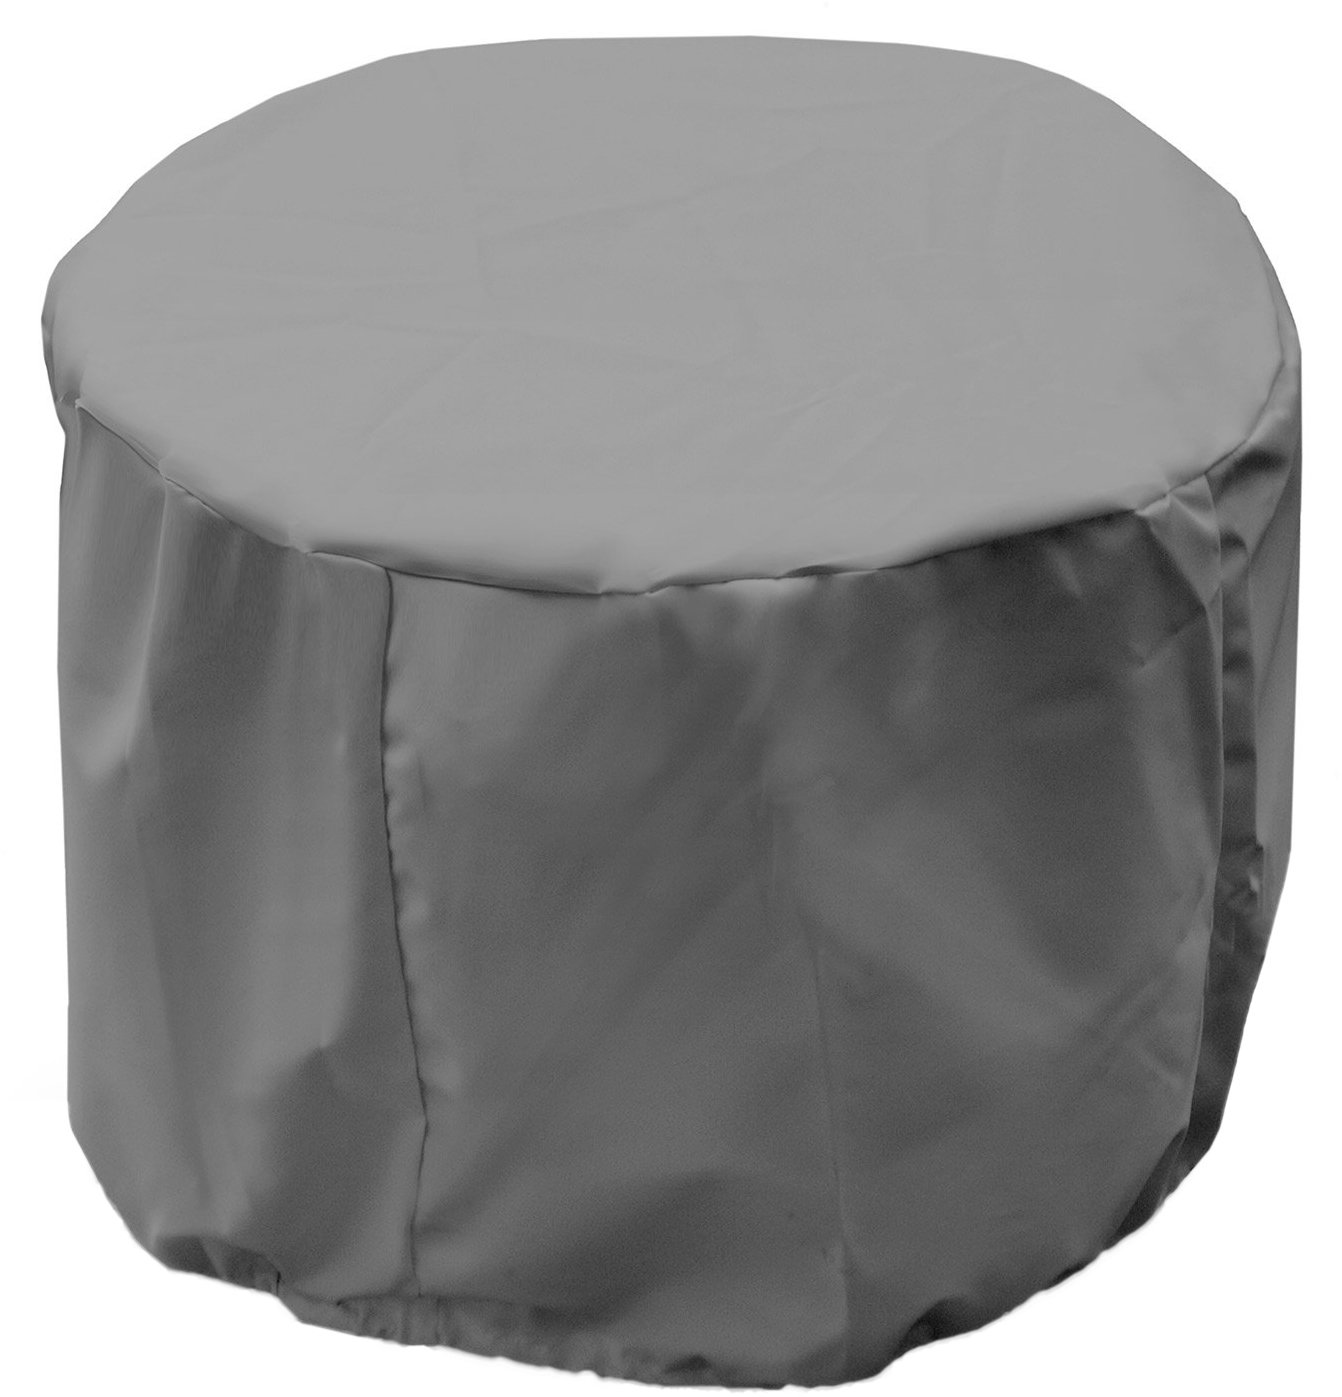 KOVERROOS 22 Round Table Cover